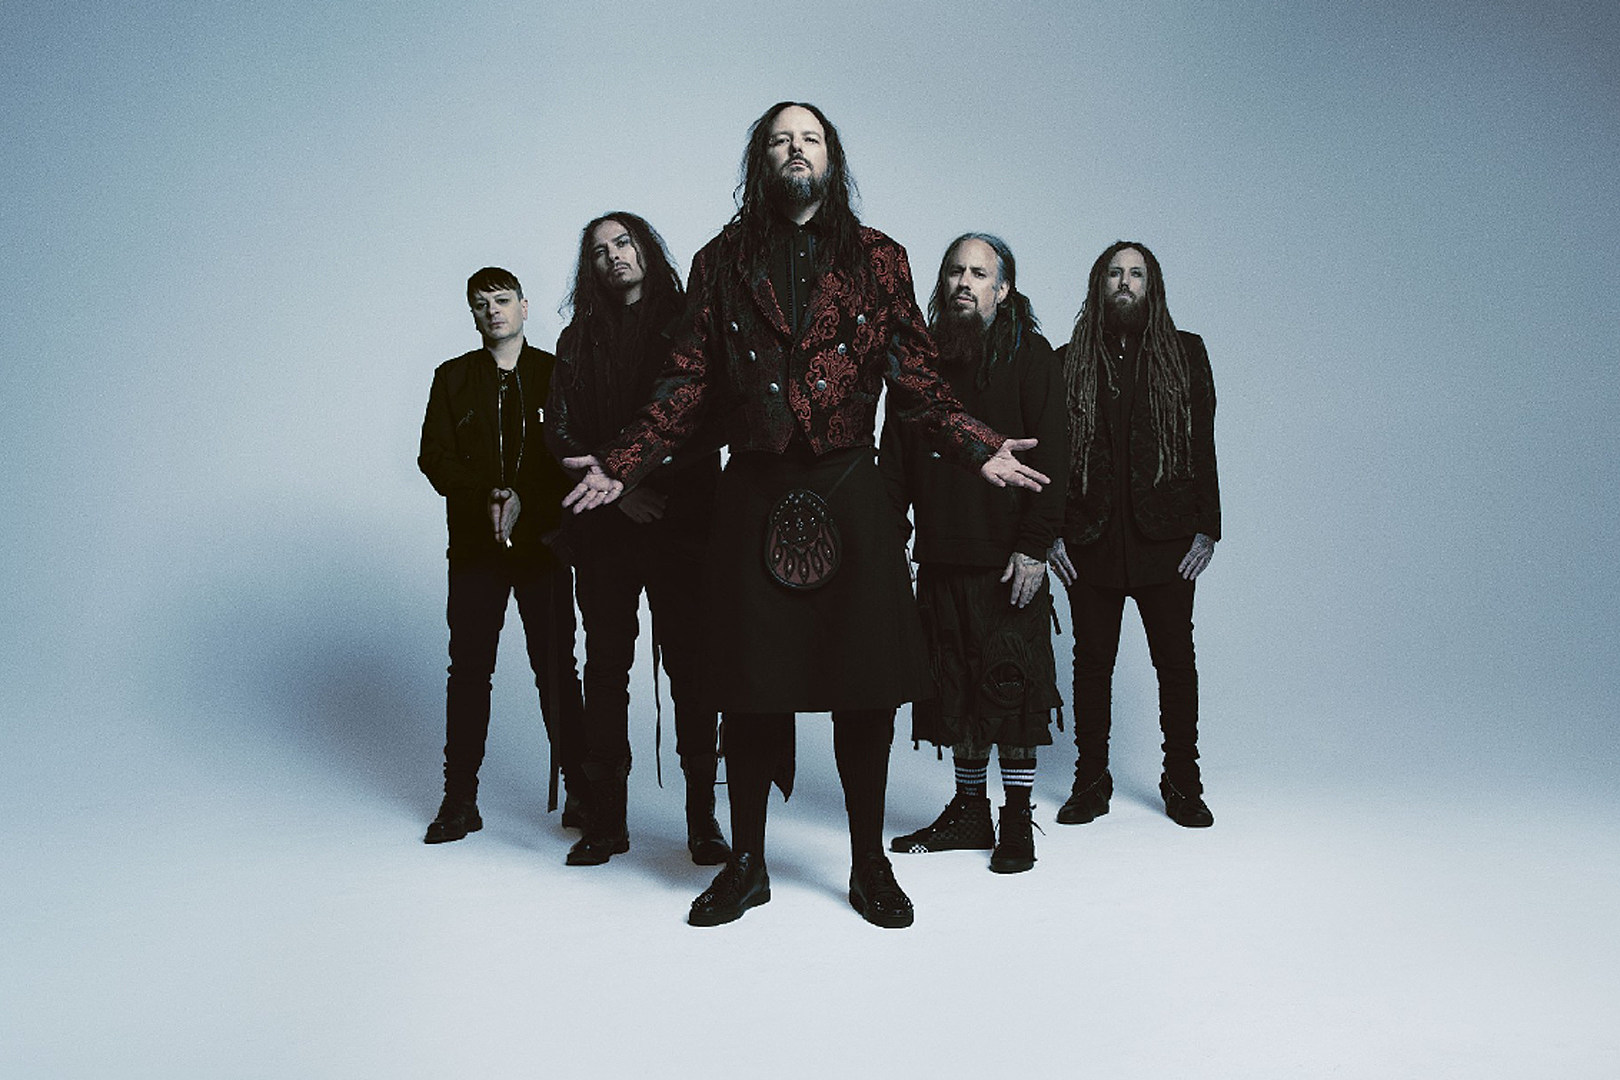 Korn Continue to Add Covers for Potential Covers Release